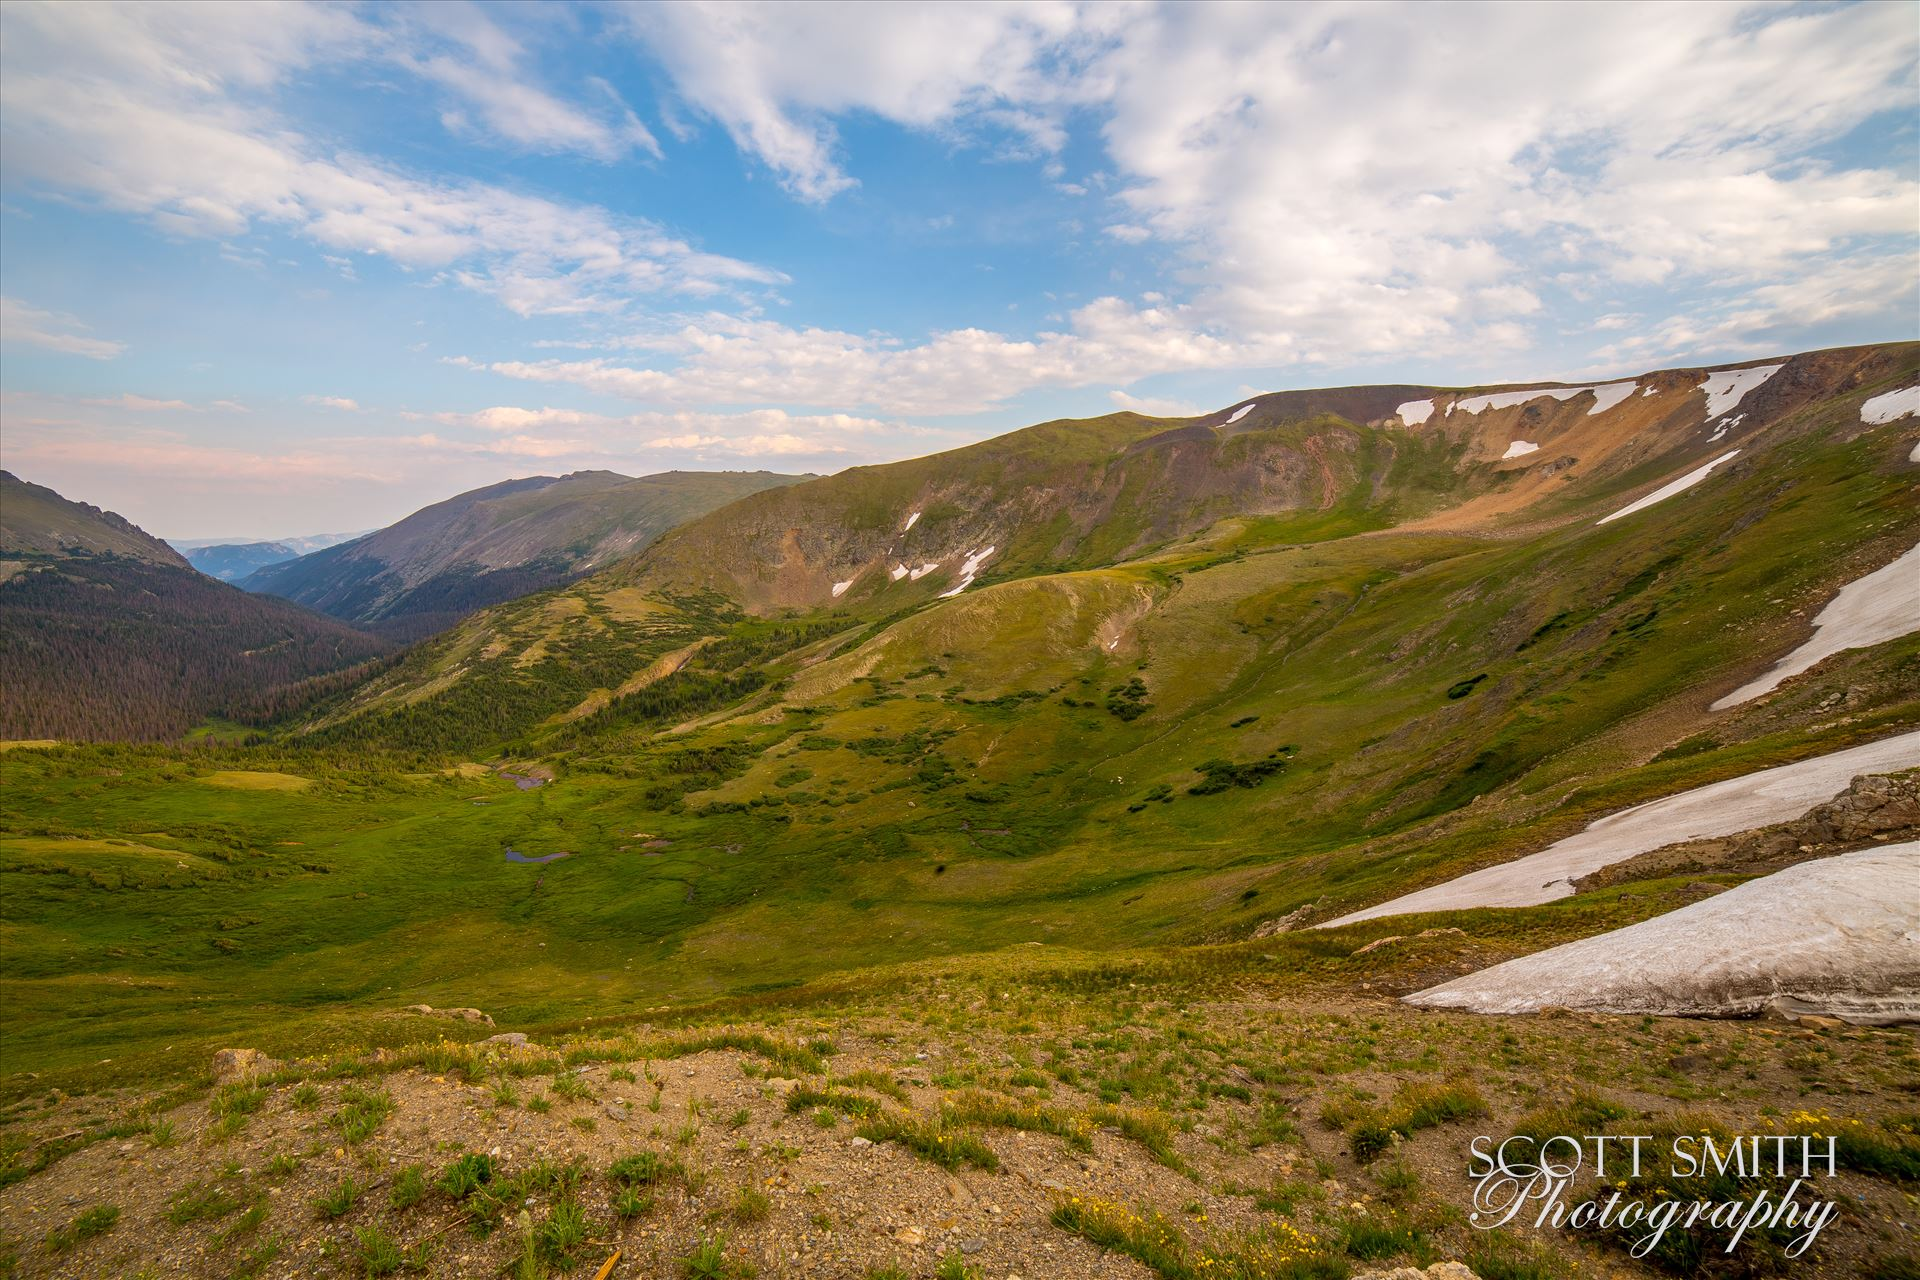 Rocky Mountain National Park Alpine Visitors Center - Near the summit of Trail Ridge Road in Rocky Mountain National Park, the Alpine Visitor's Center offers some astounding views. by Scott Smith Photos